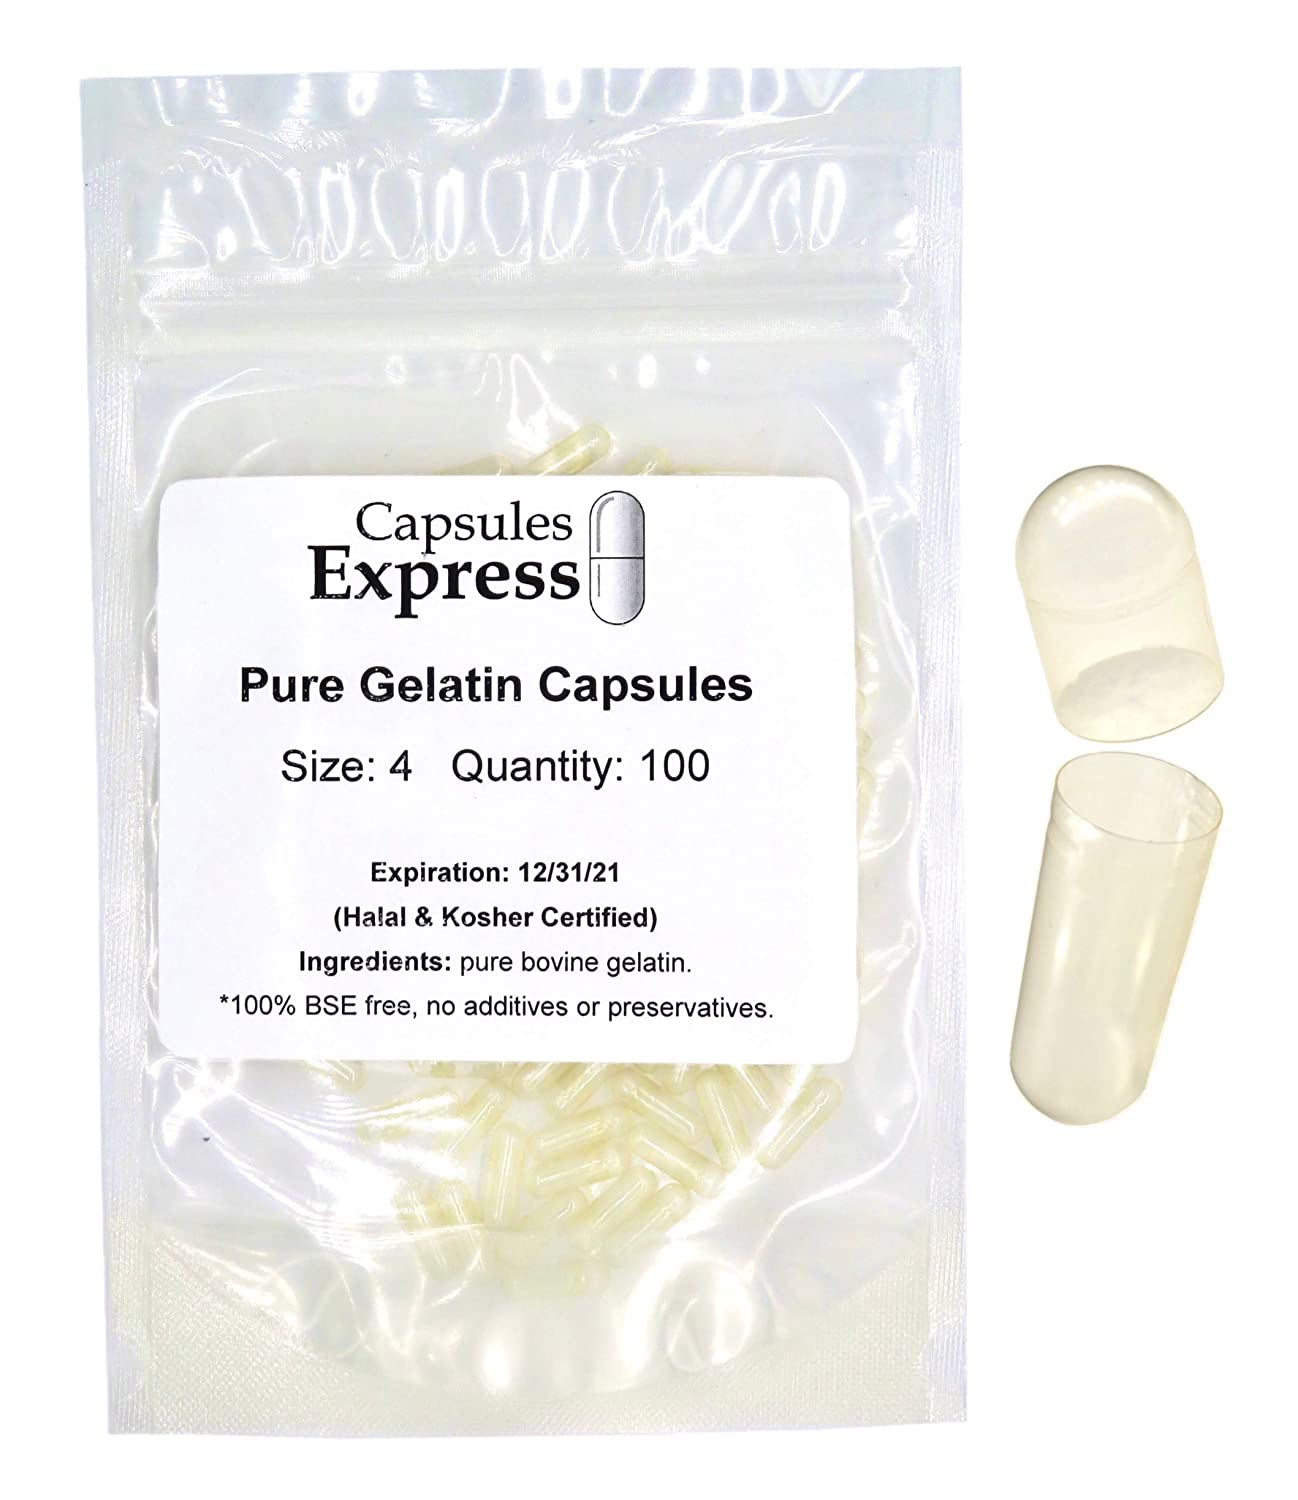 Size 4 Clear Empty Gelatin Capsules, 100 Count, Halal & Kosher Certified by Capsules Express